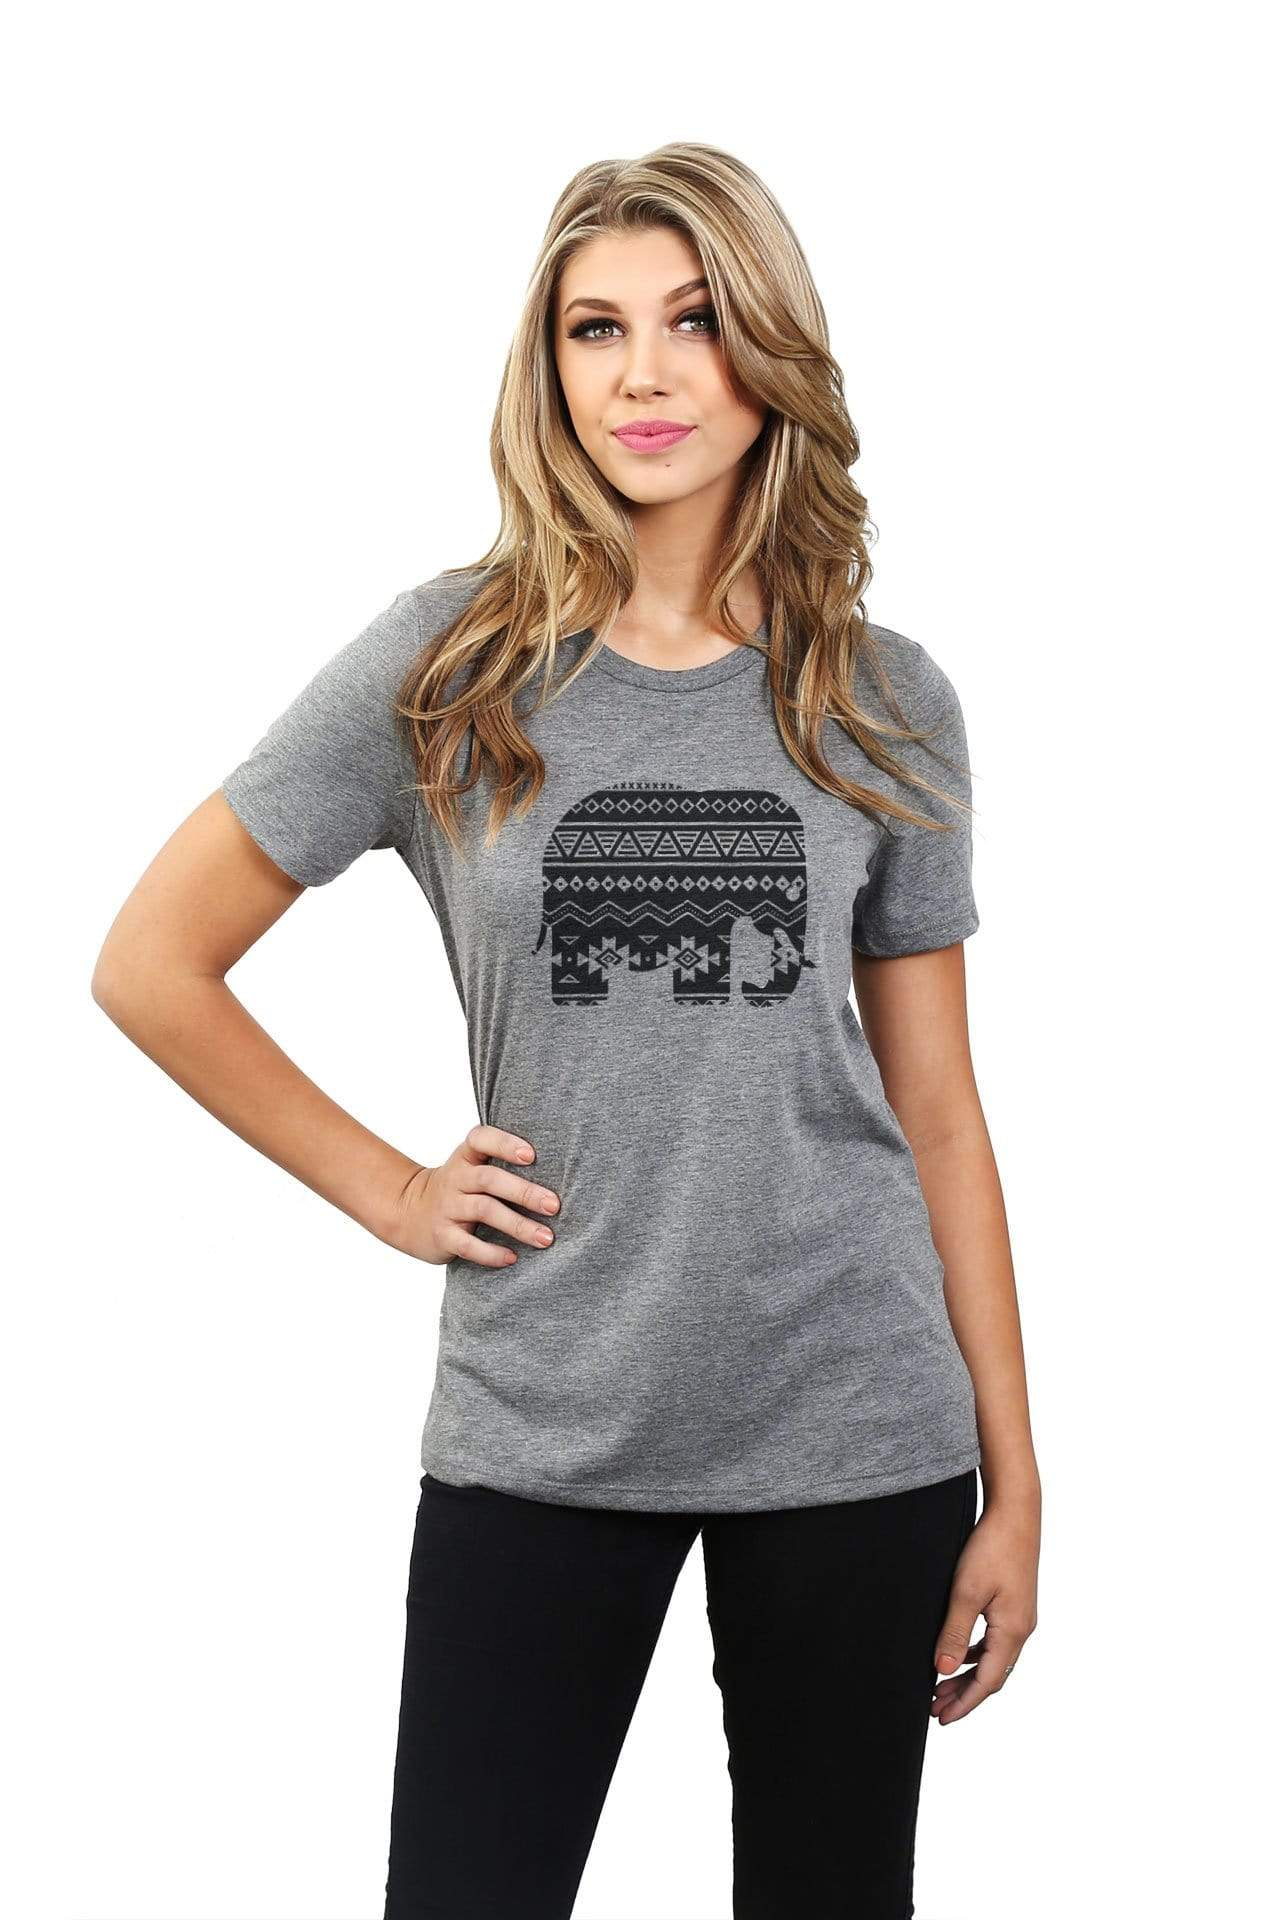 Aztec Tribal Elephant - Thread Tank | Stories You Can Wear | T-Shirts, Tank Tops and Sweatshirts